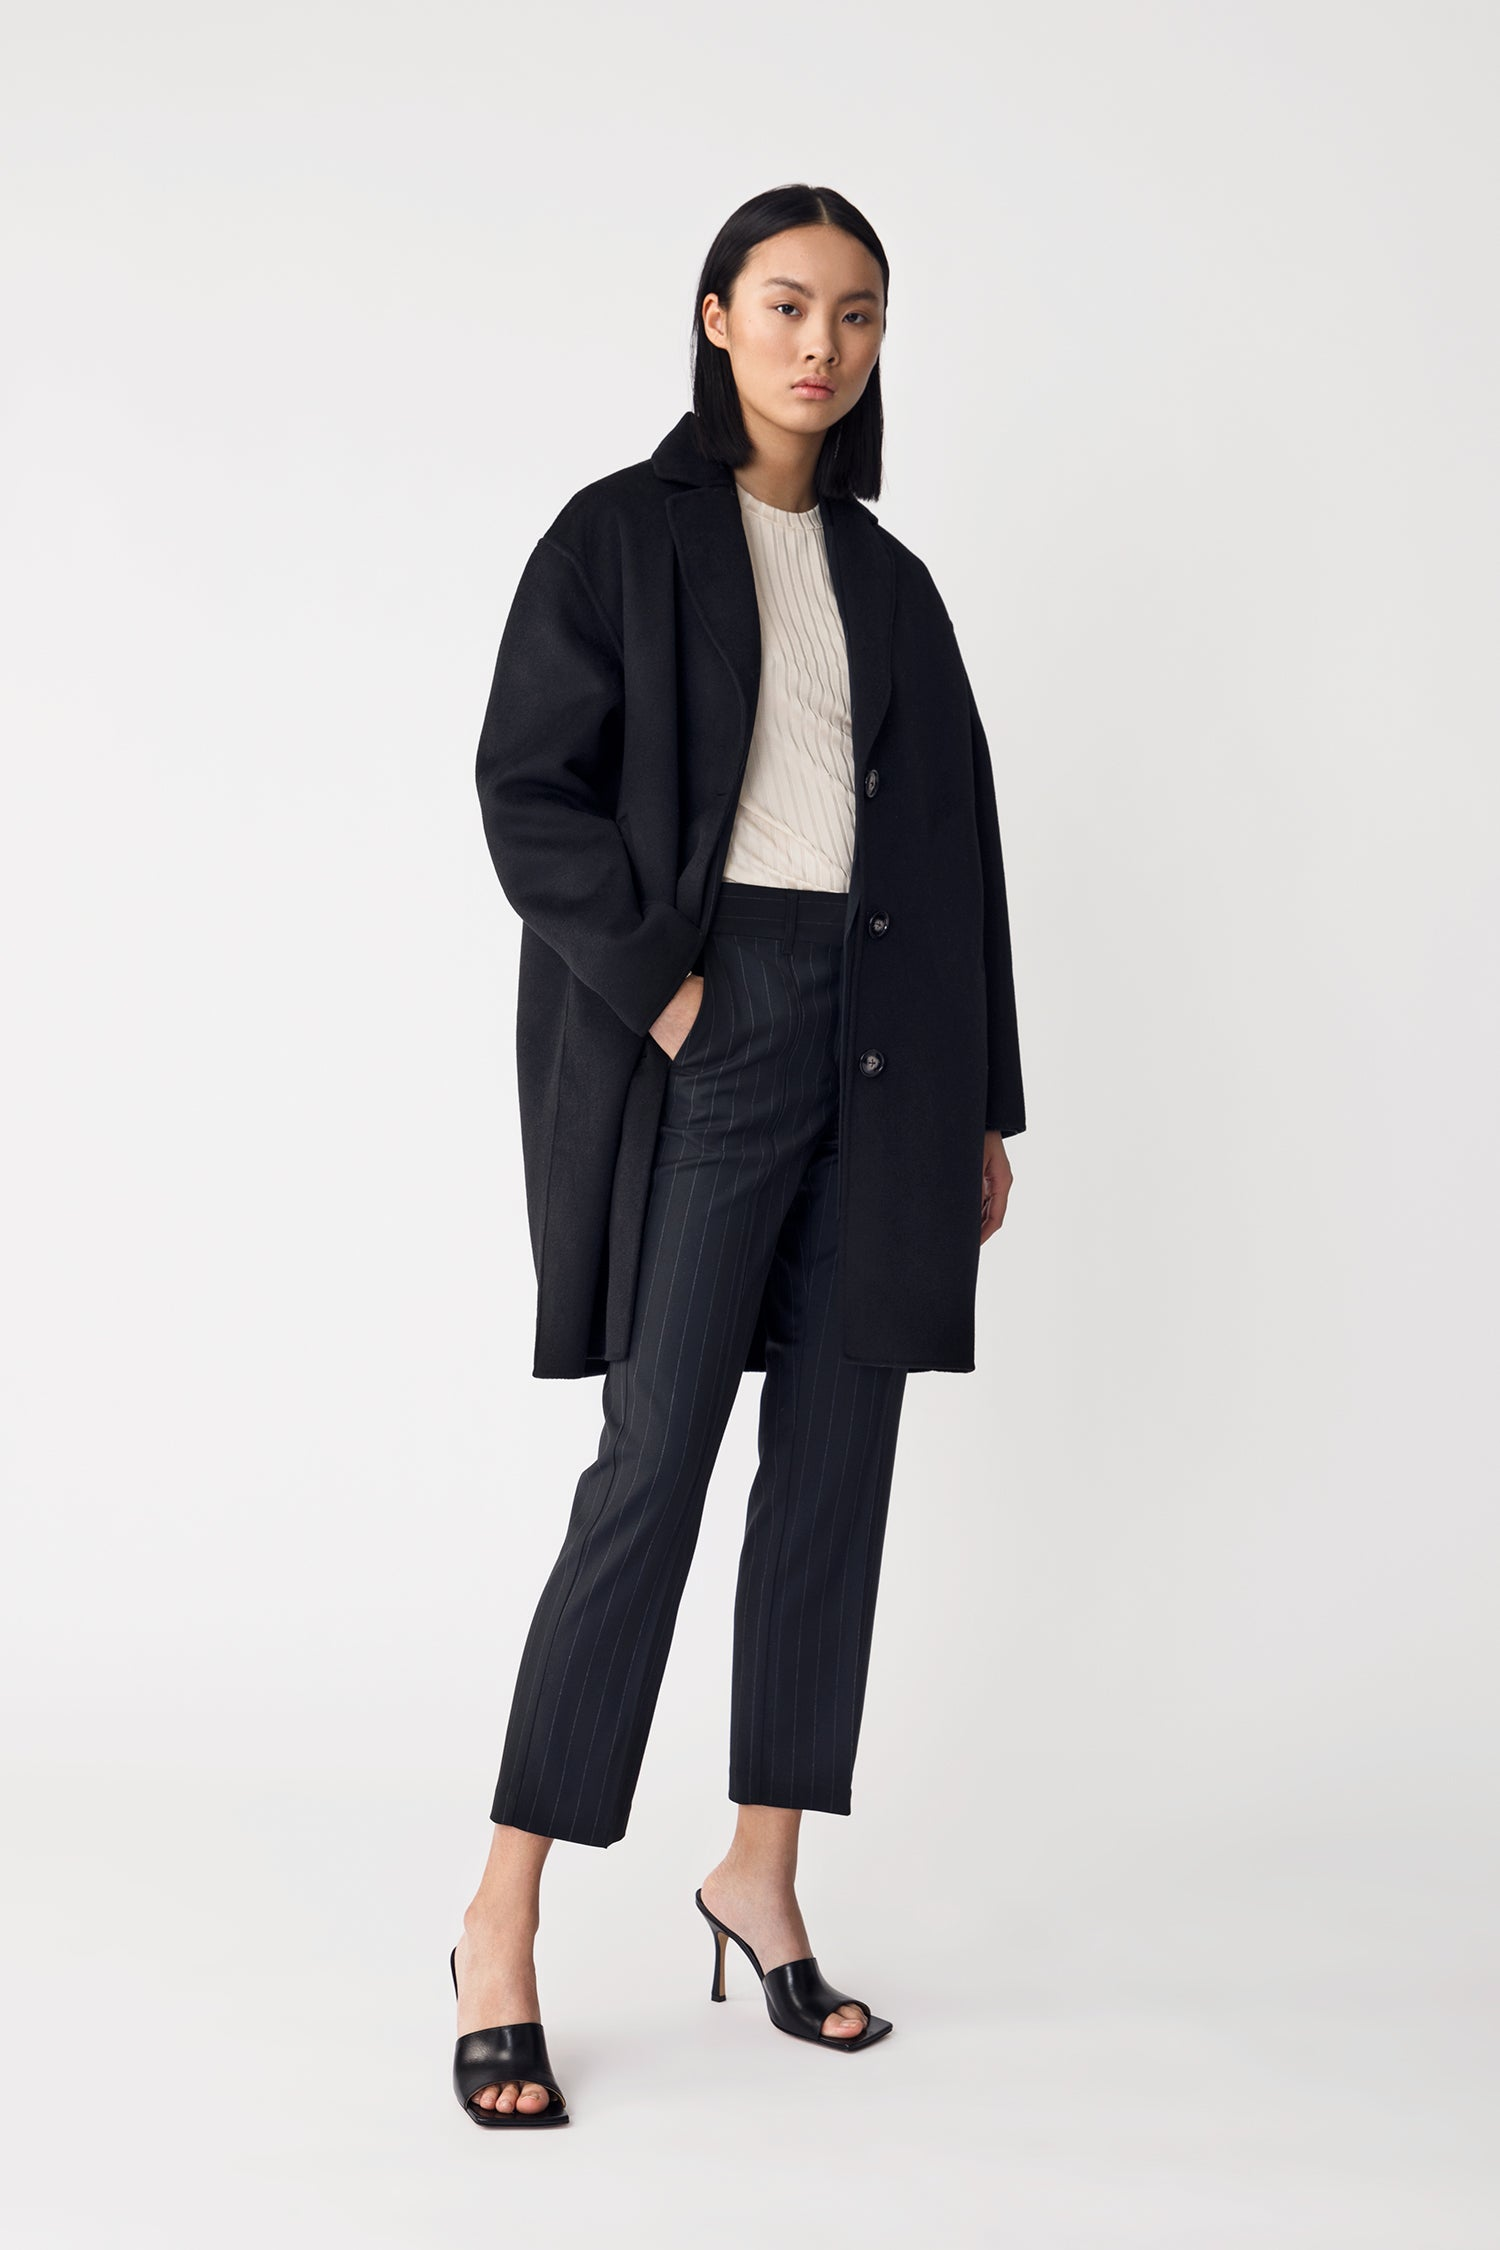 TESSIE COAT - BLACK